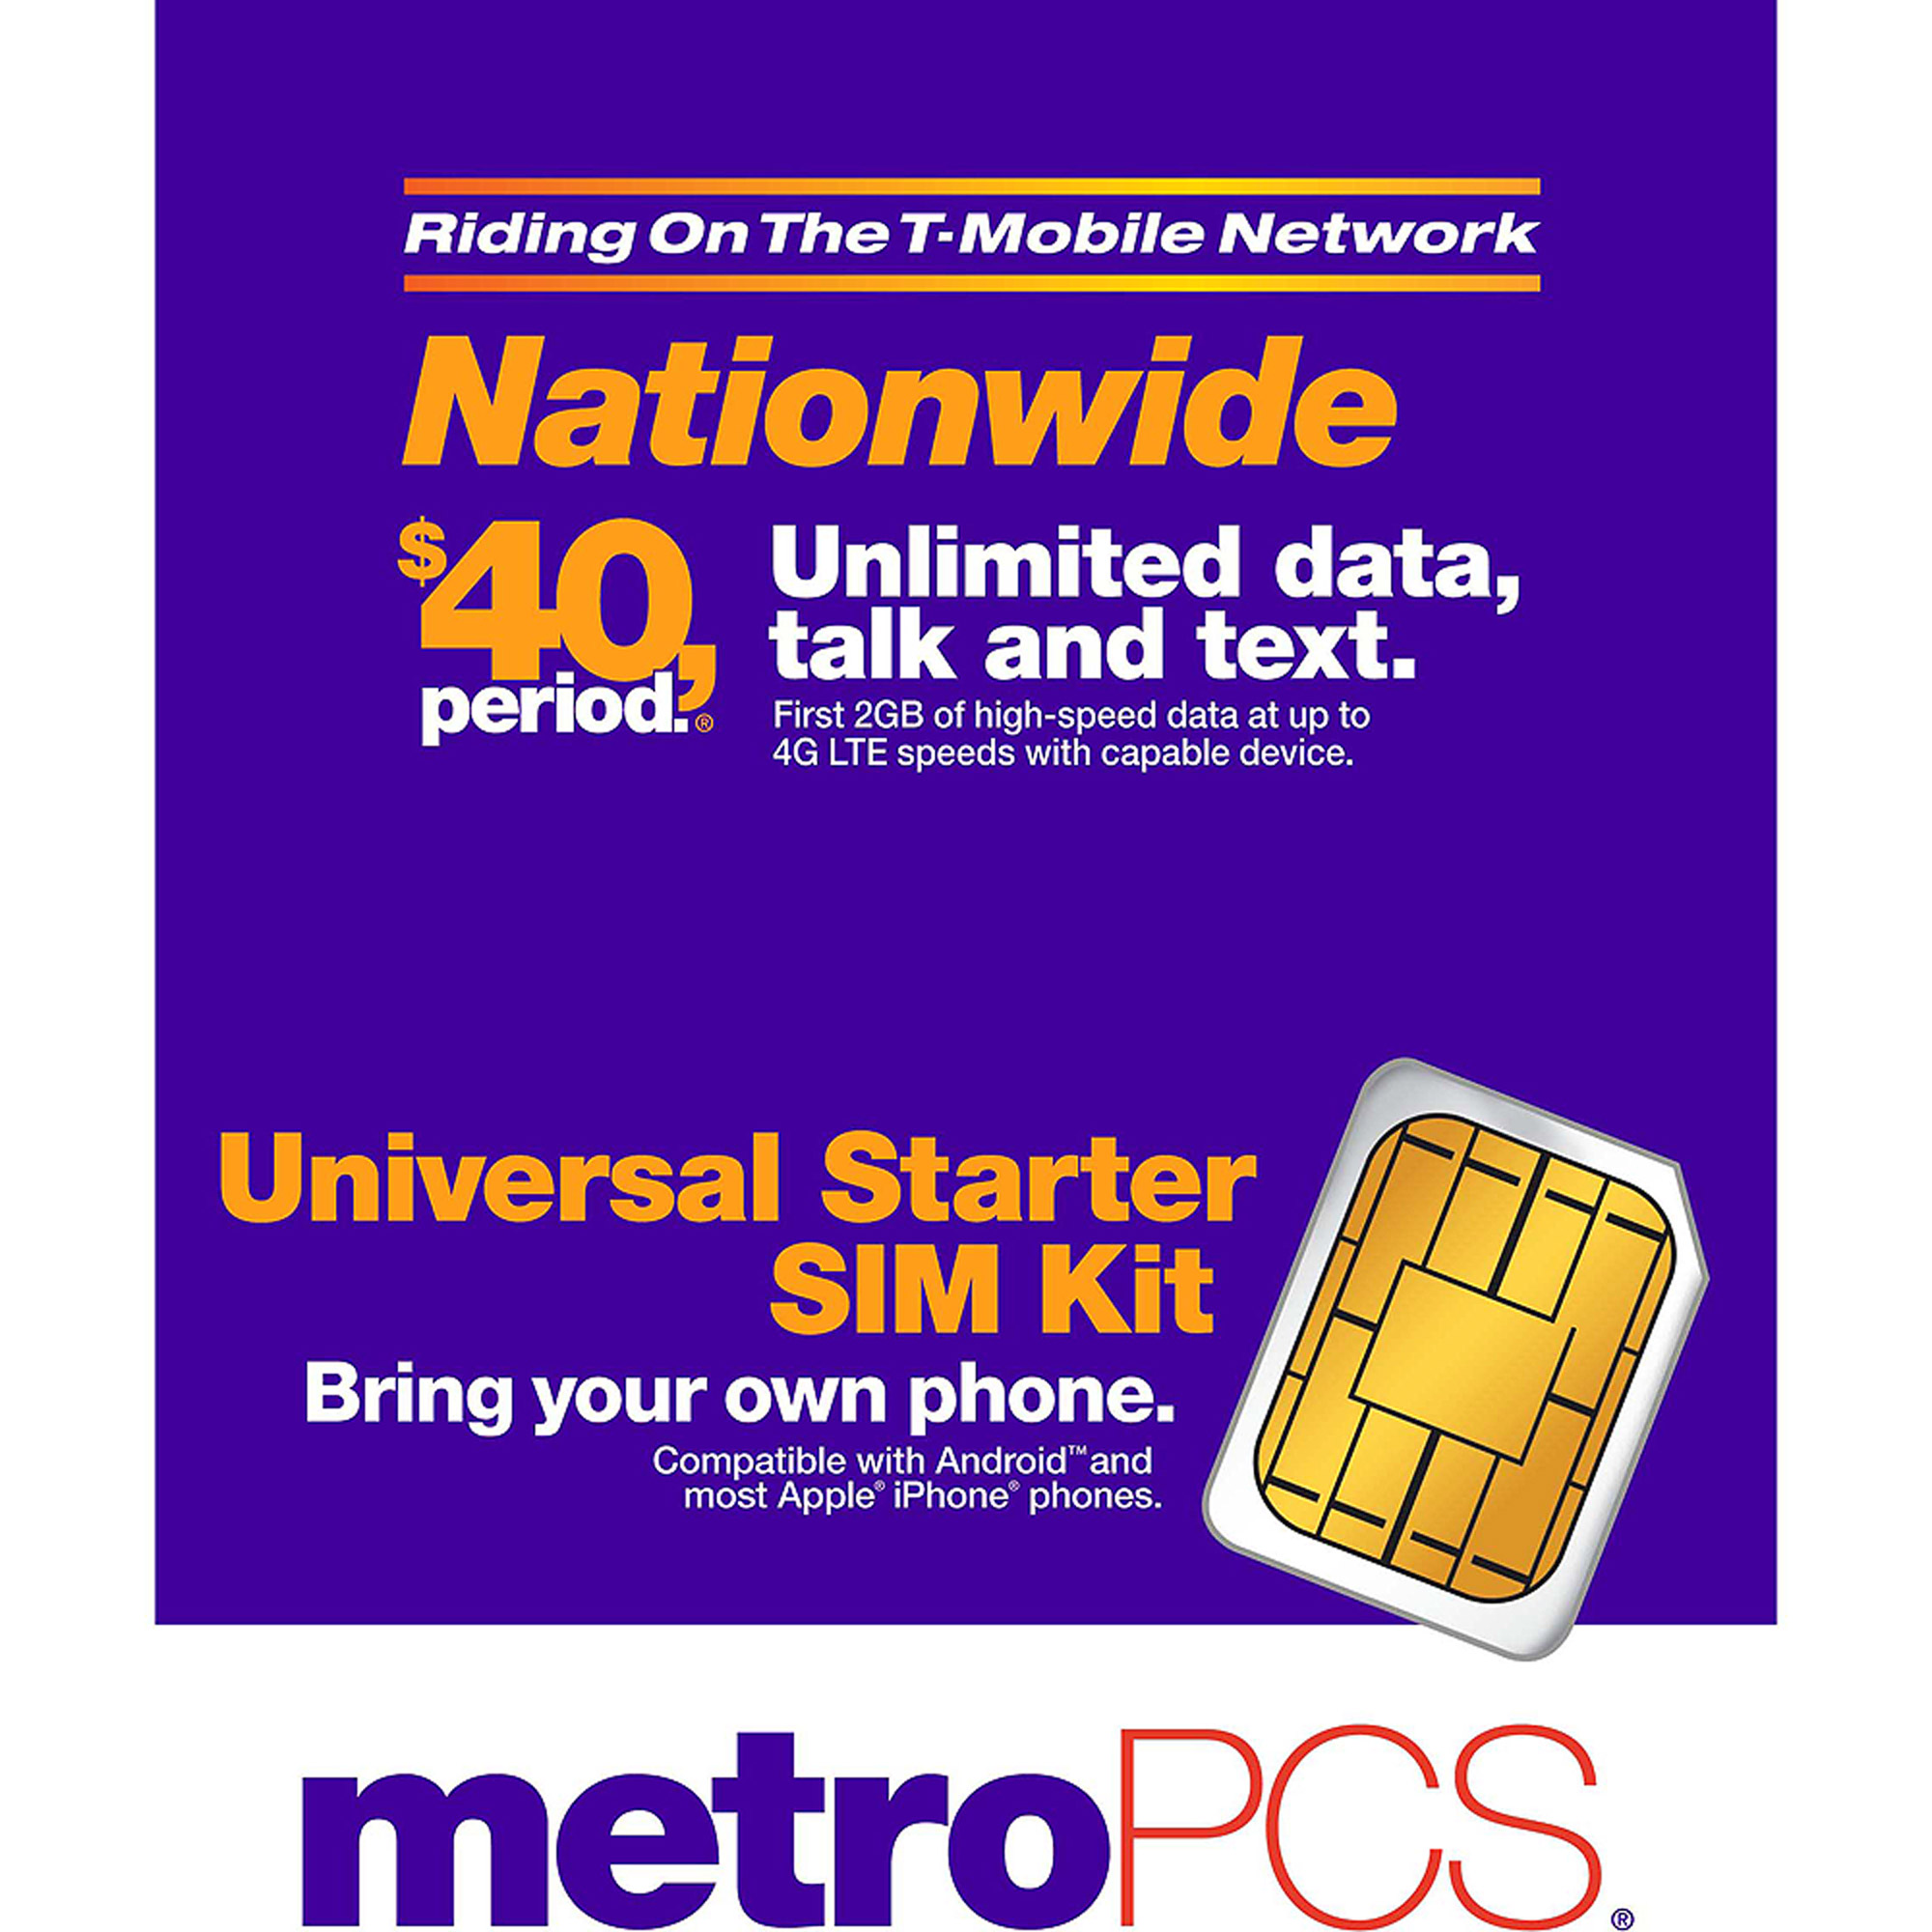 metro pcs phones iphone 6